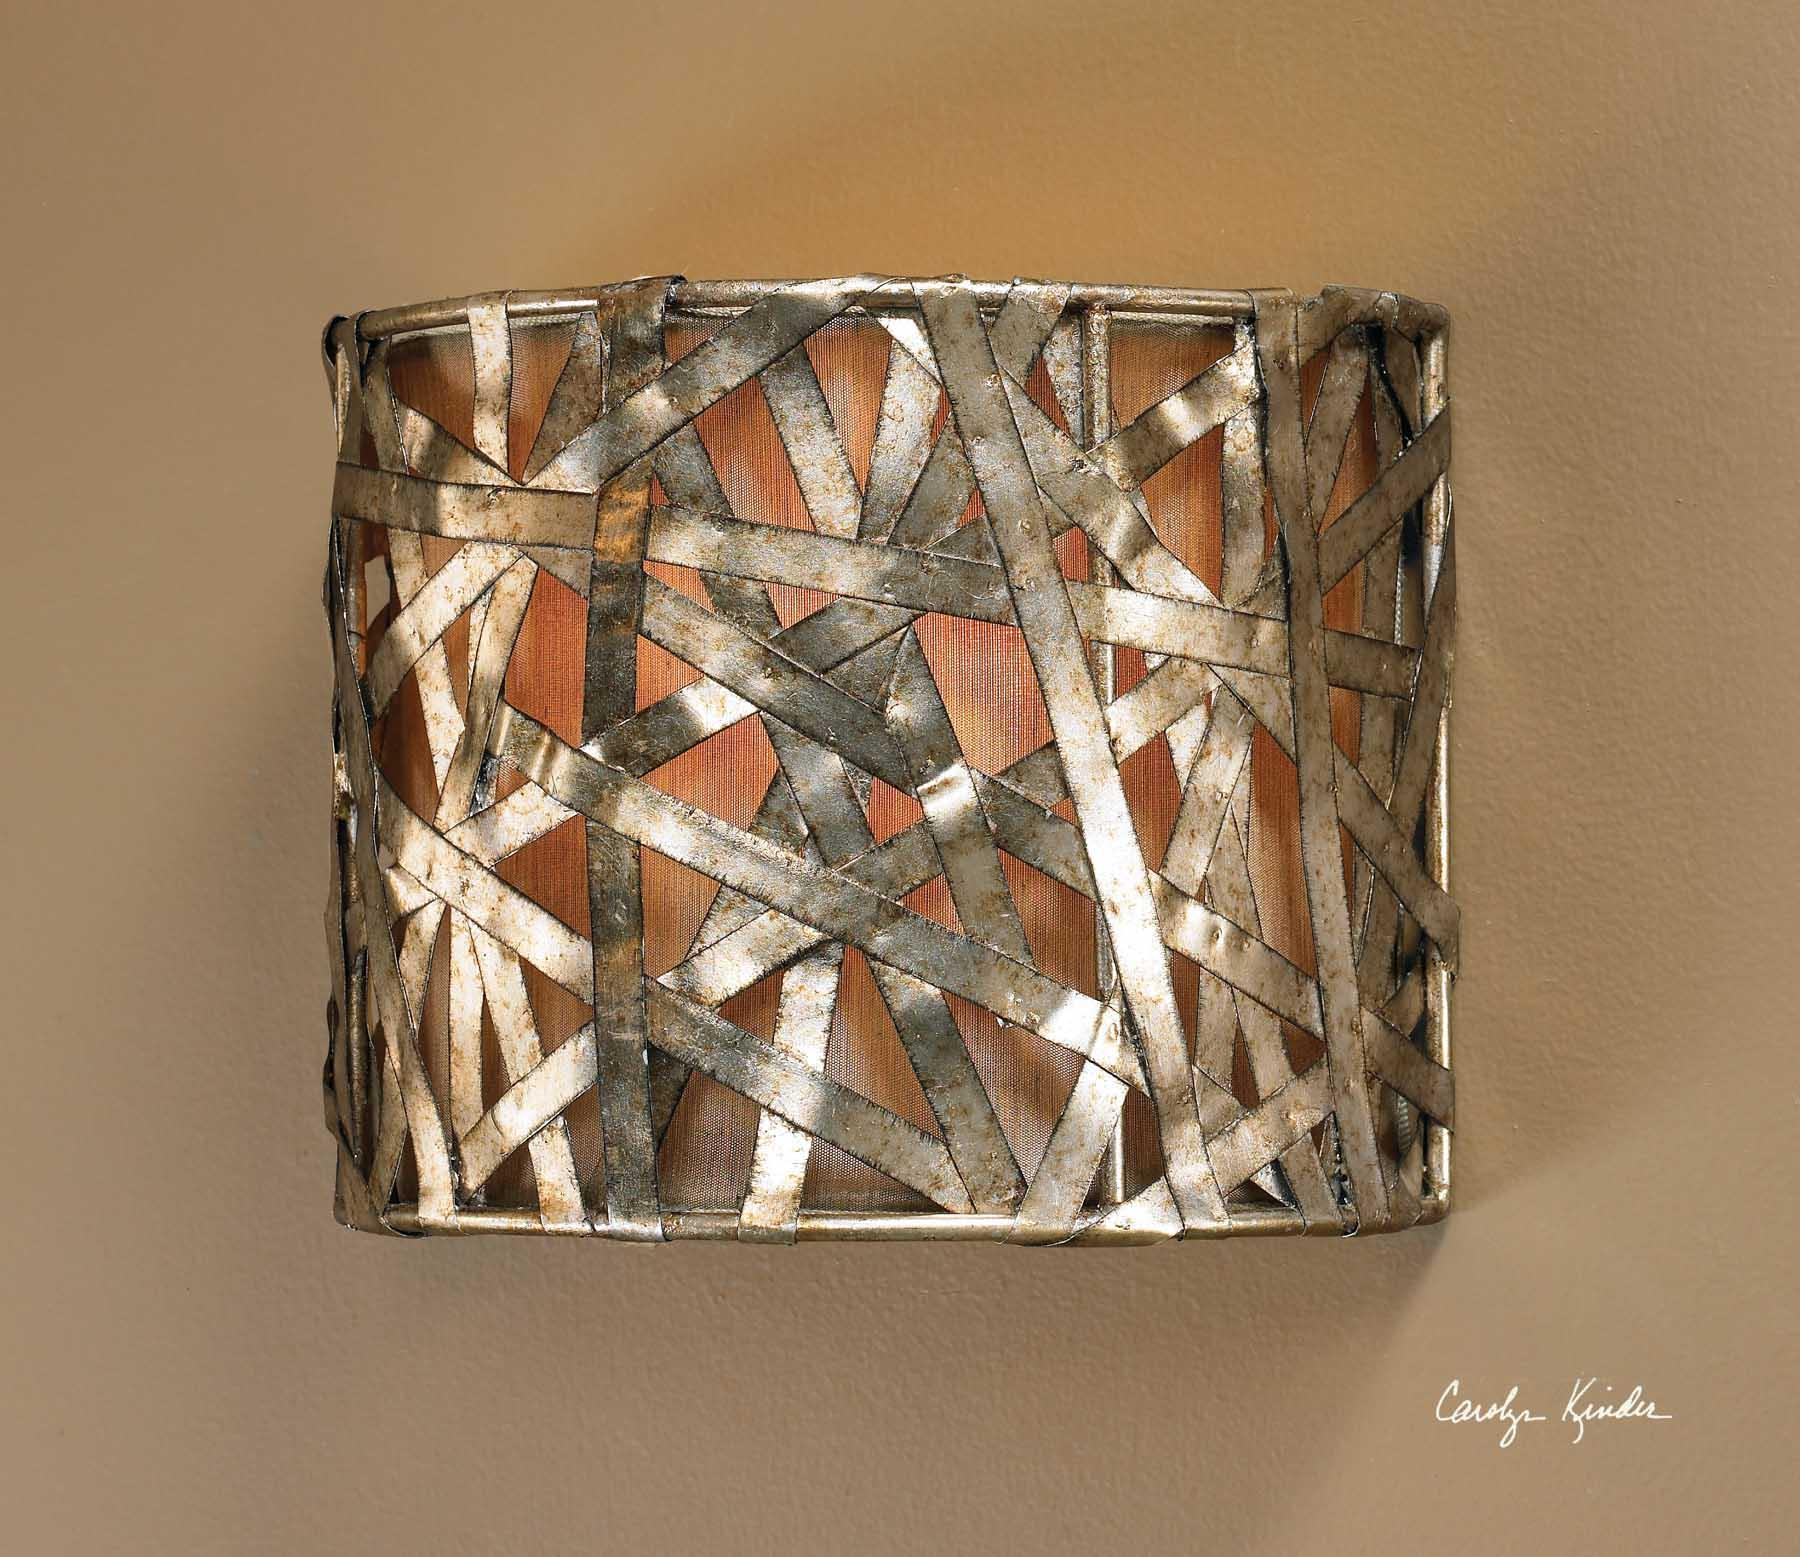 Uttermost Lighting Fixtures Alita Champagne 1 Light Wall Sconce - Item Number: 22464